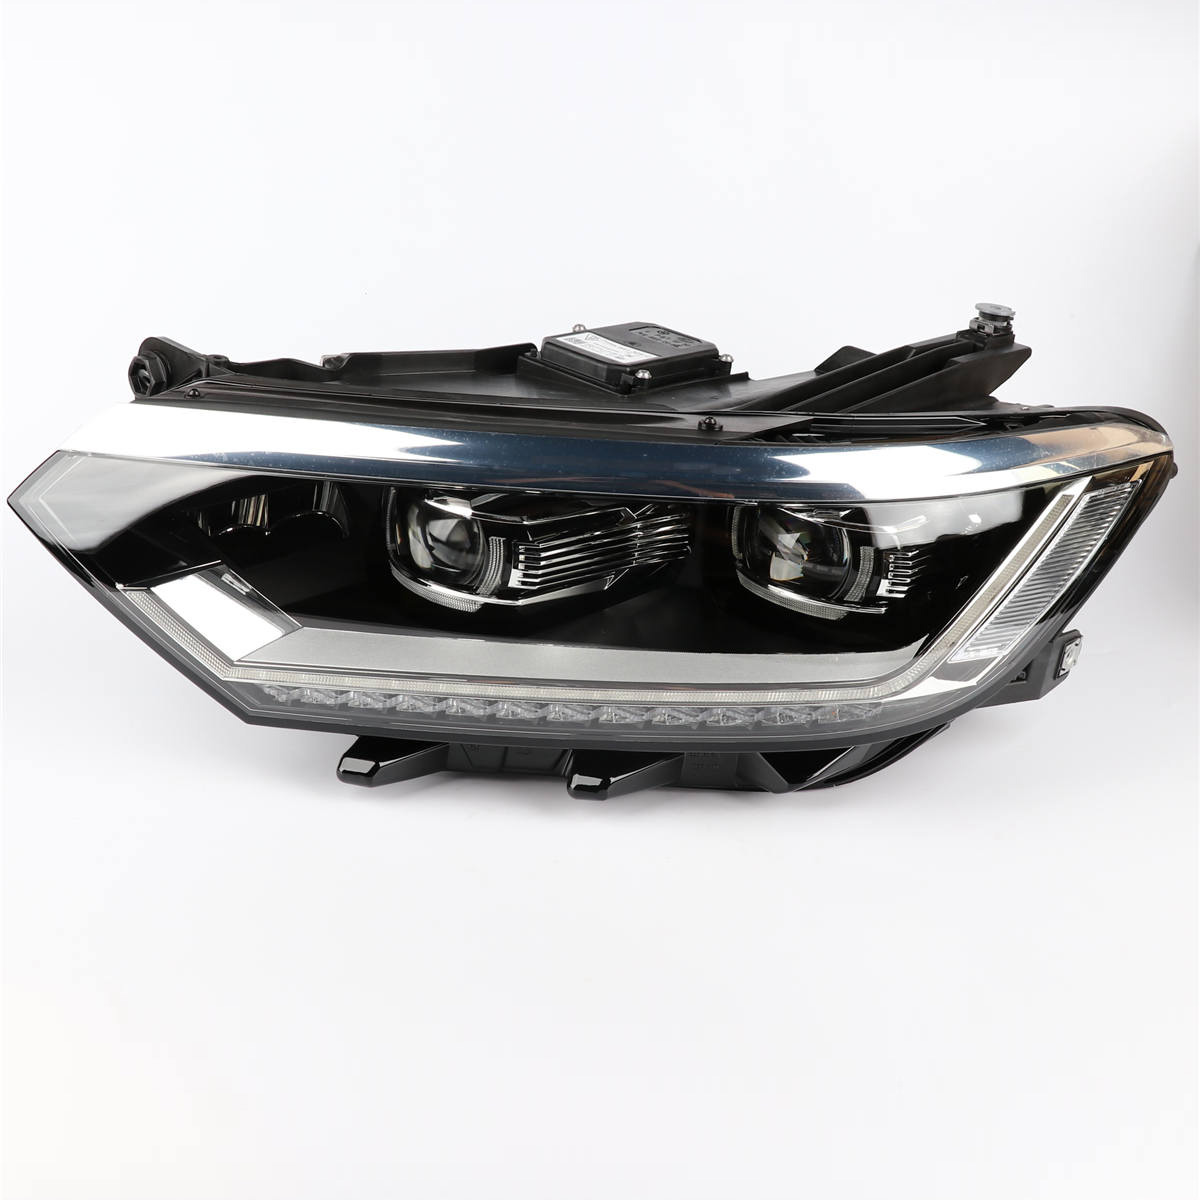 1Pcs Left OEM Genuine Front Headlight Head Light Lamp Assembly with Warranty For VW Passat B8 L3GD 941 081 1pcs oem front left halogen fog lamp light 3ad 941 661 for vw passat b7